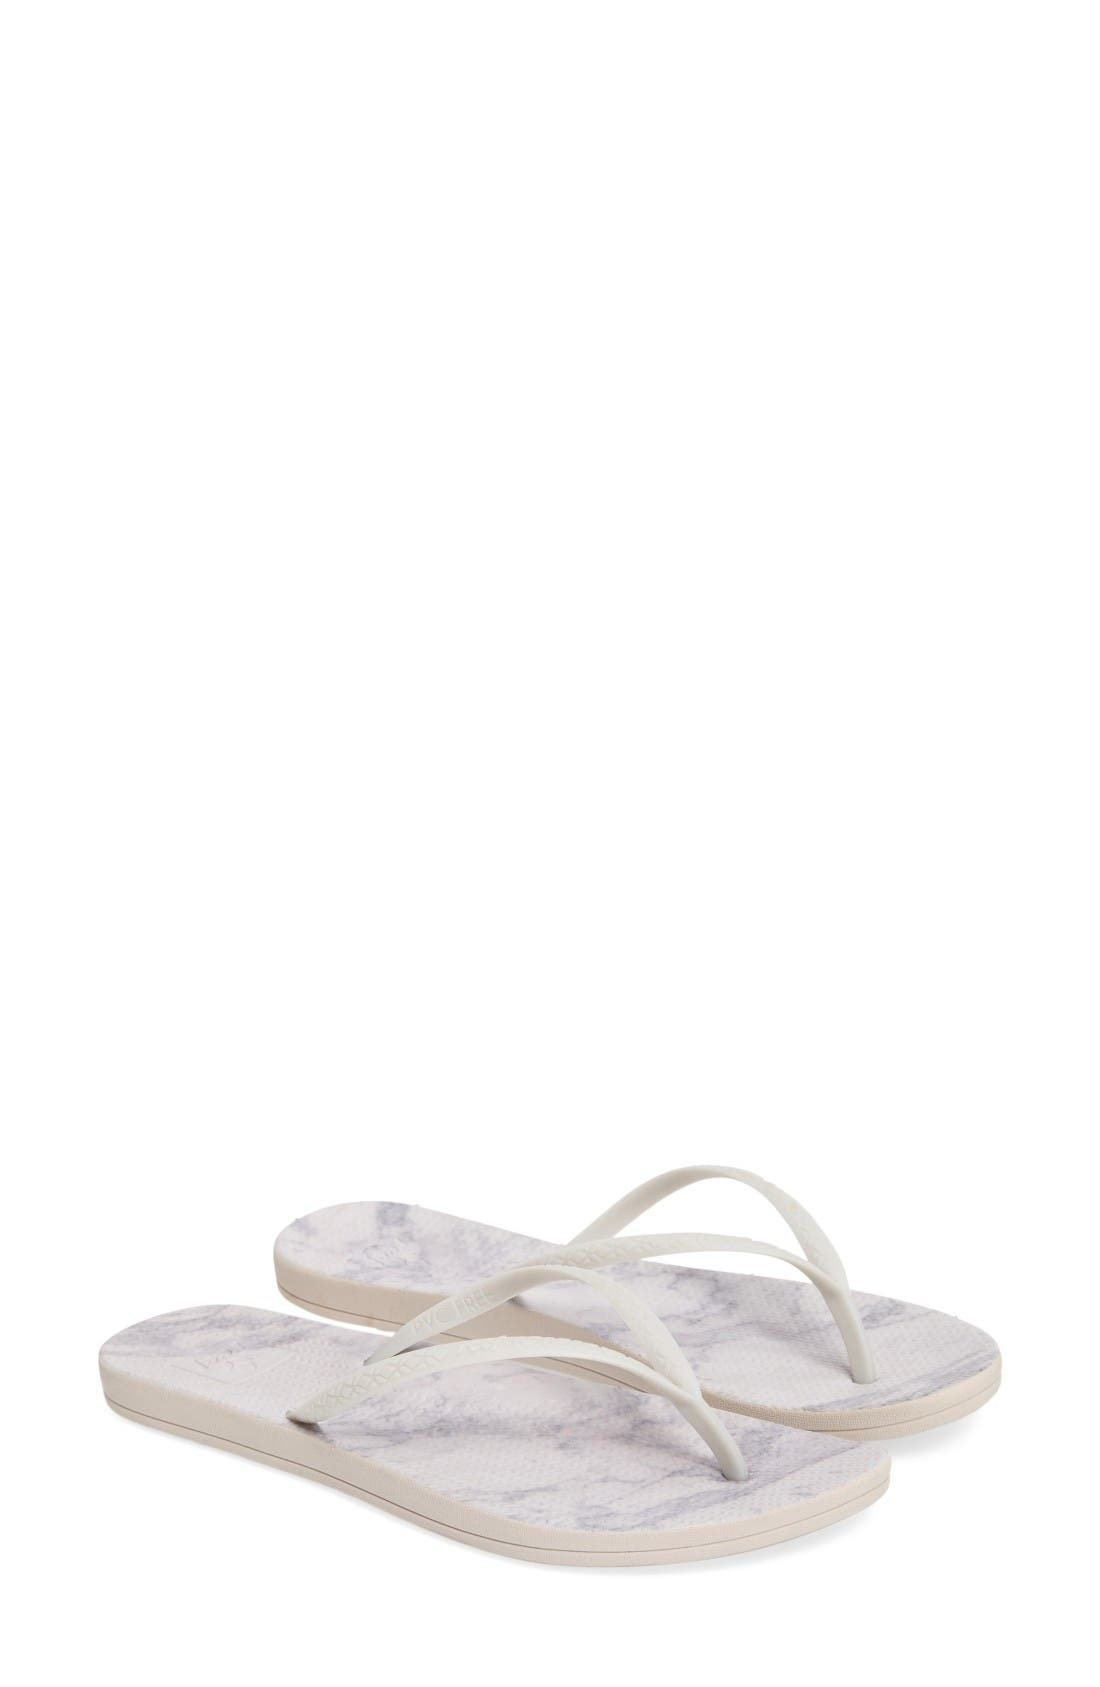 Reef Escape Flip Flop (Women)